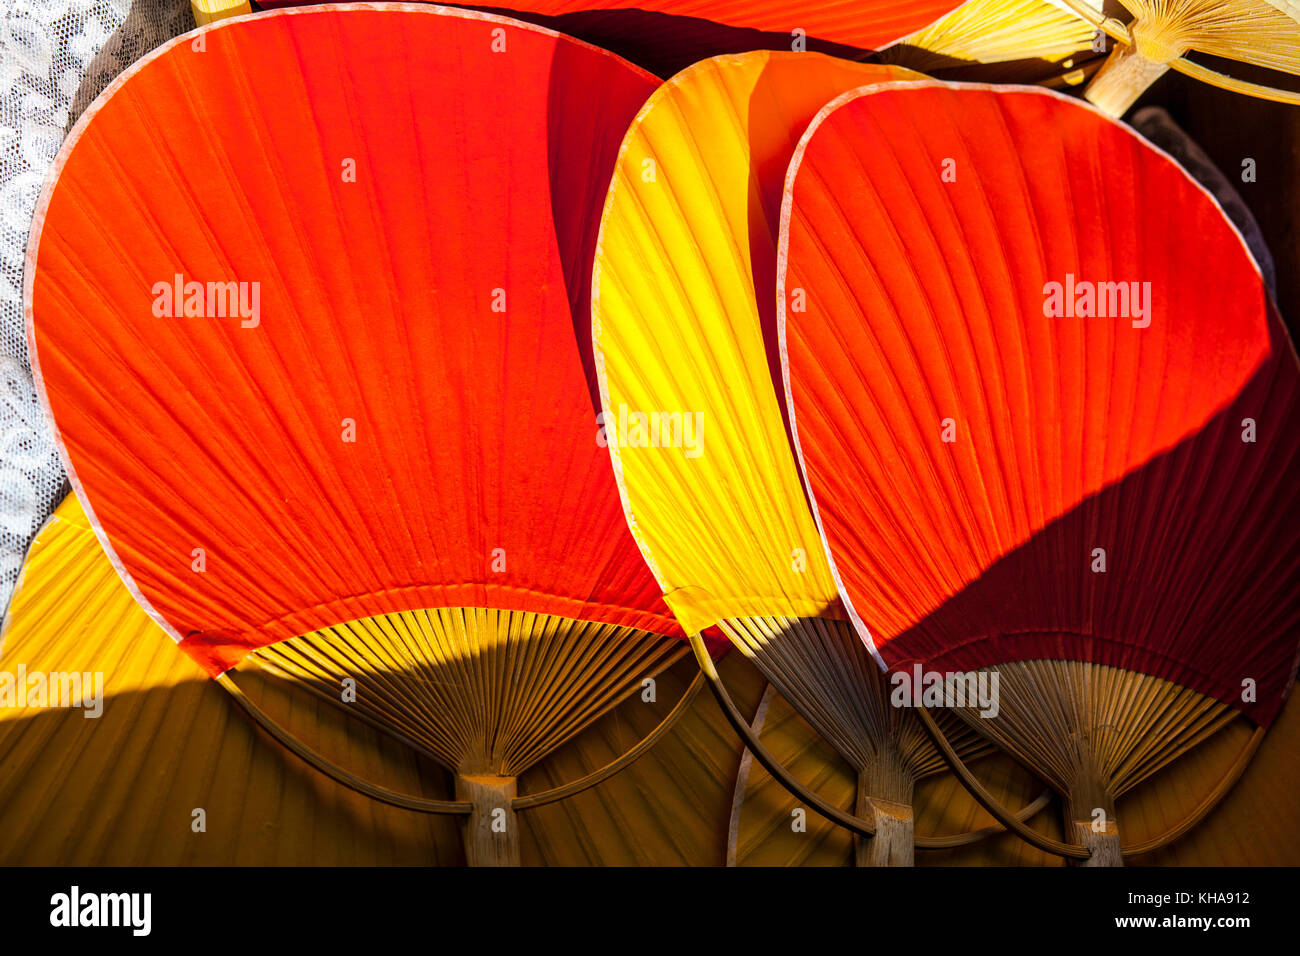 5078ff3c7115d Setting of handheld fans for wedding guests. Red and yellow bamboo rigid  fans - Stock